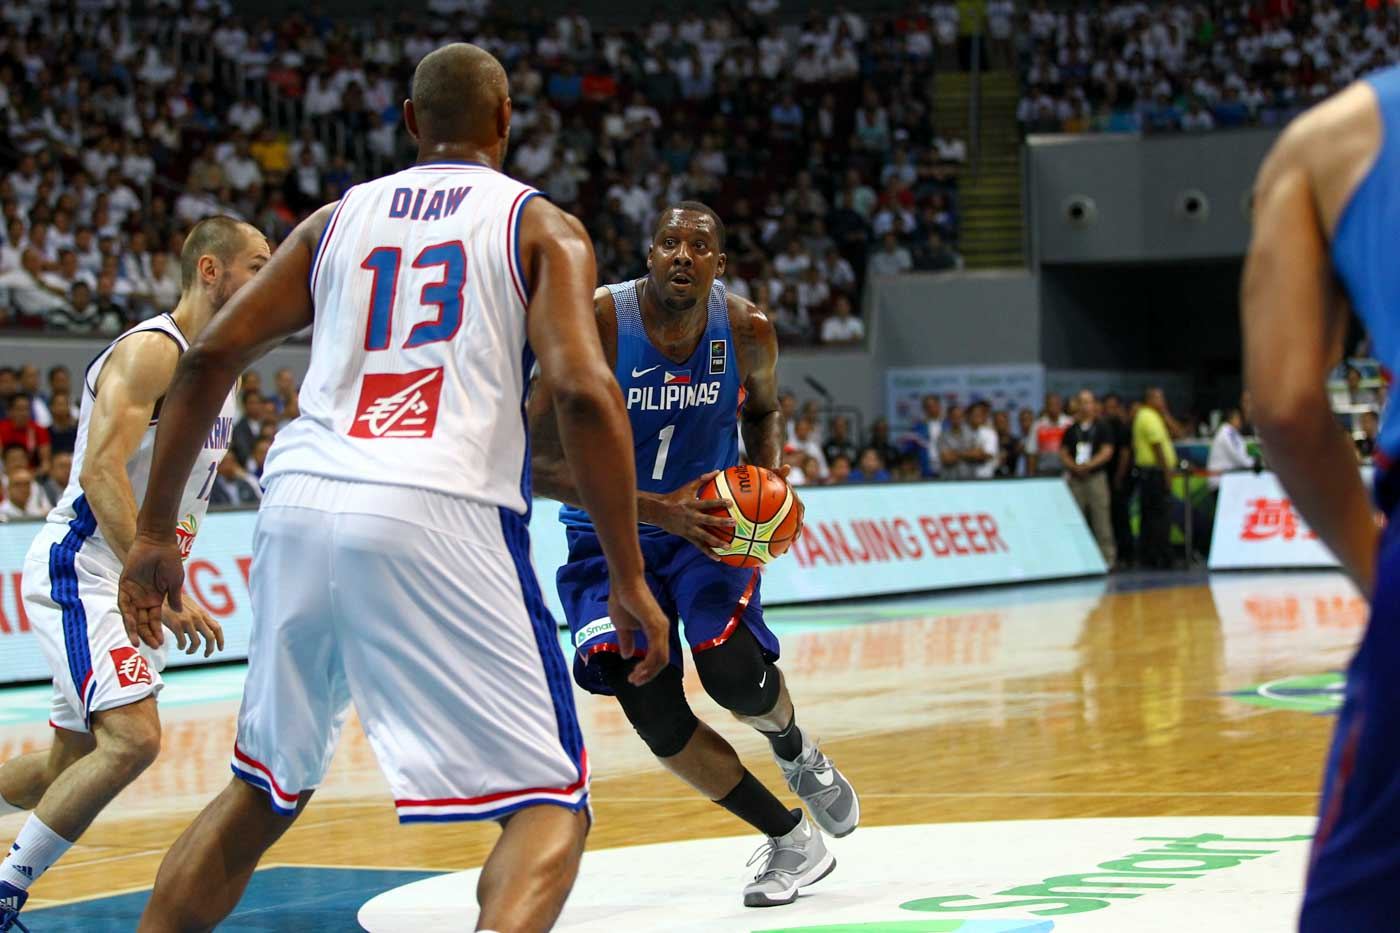 Andray Blatche of the Philippines drives to the rim against Boris Diaw of France. Photo by Josh Albelda/Rappler